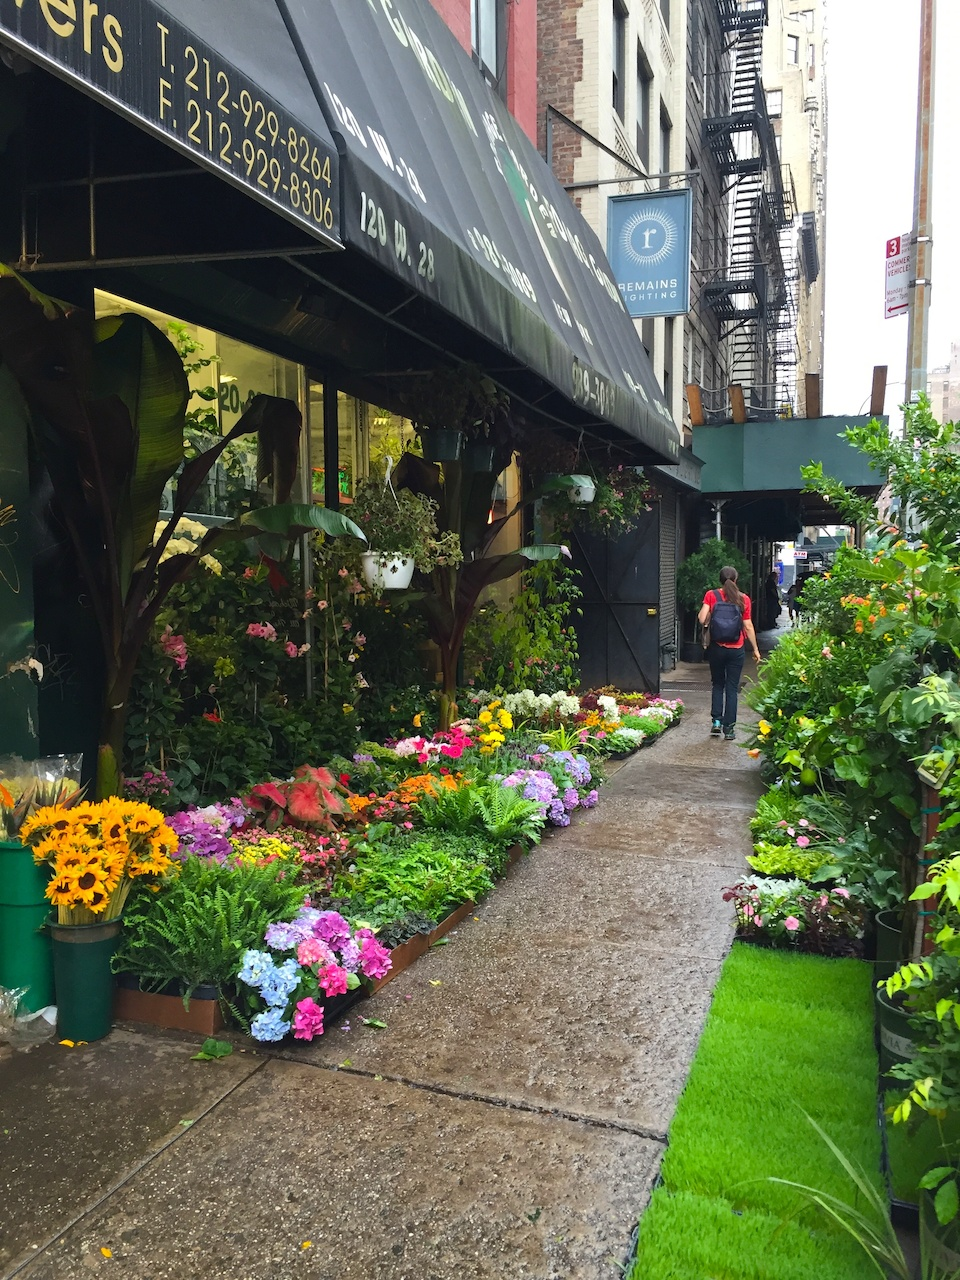 In the heart of Chelsea, 28th Street features one business after another selling plants and flowers. The bustle of Chelsea flower market is best in the morning, when delivery trucks bring fresh blooms.